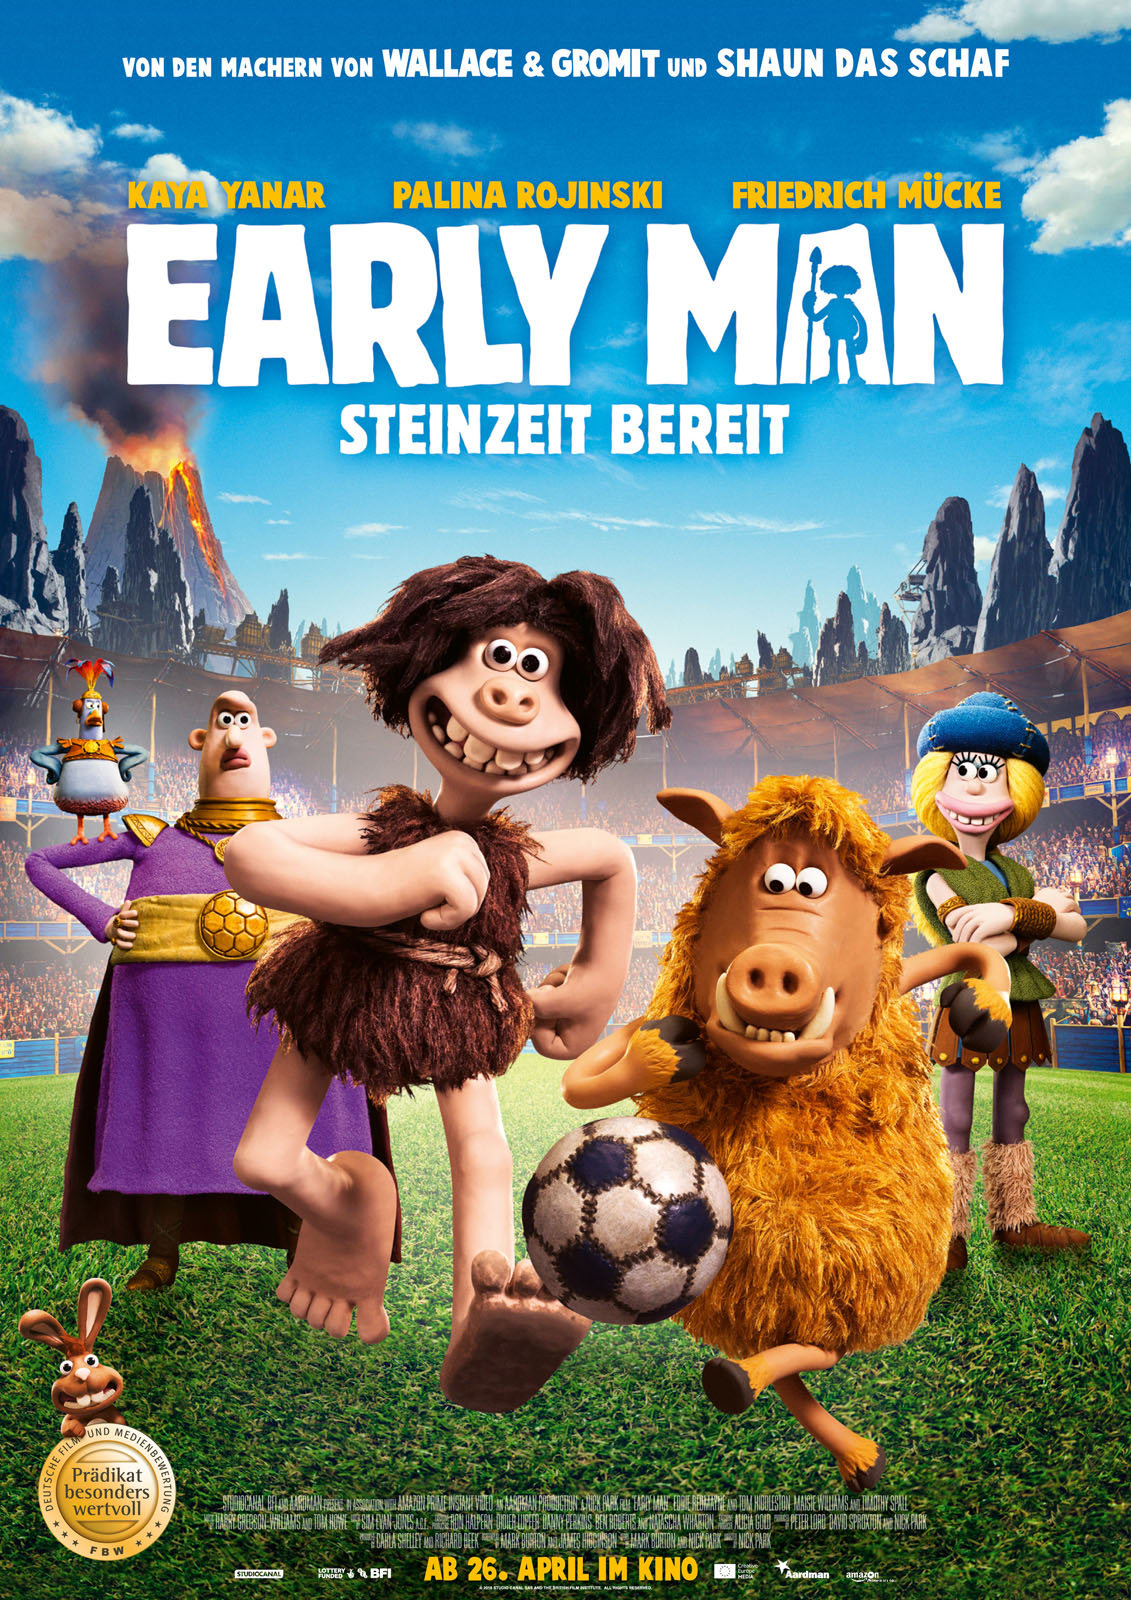 Wo kann man Early Man - Steinzeit bereit / Early Man online streamen?